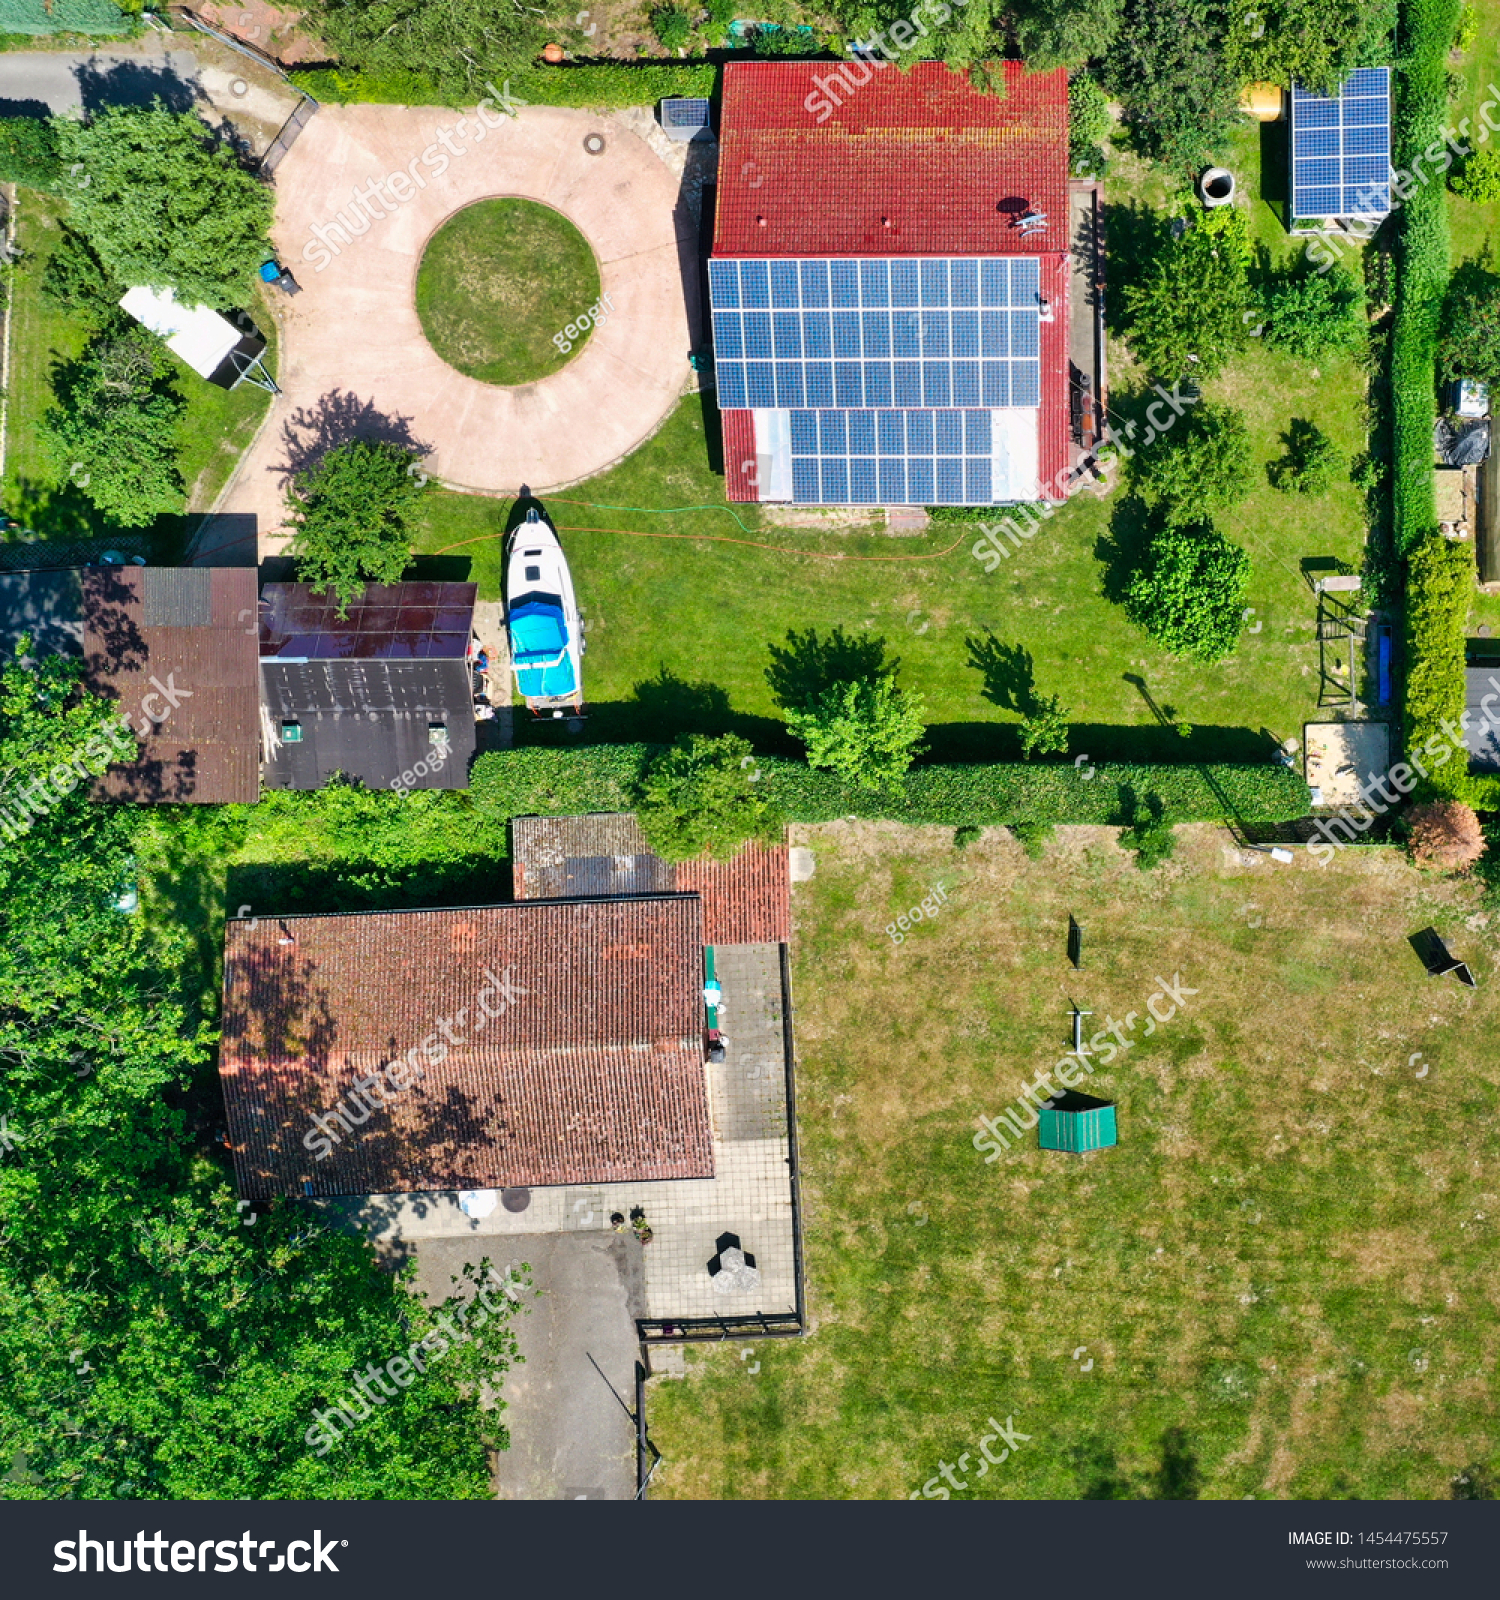 stock-photo-gifhorn-germany-july-aerial-